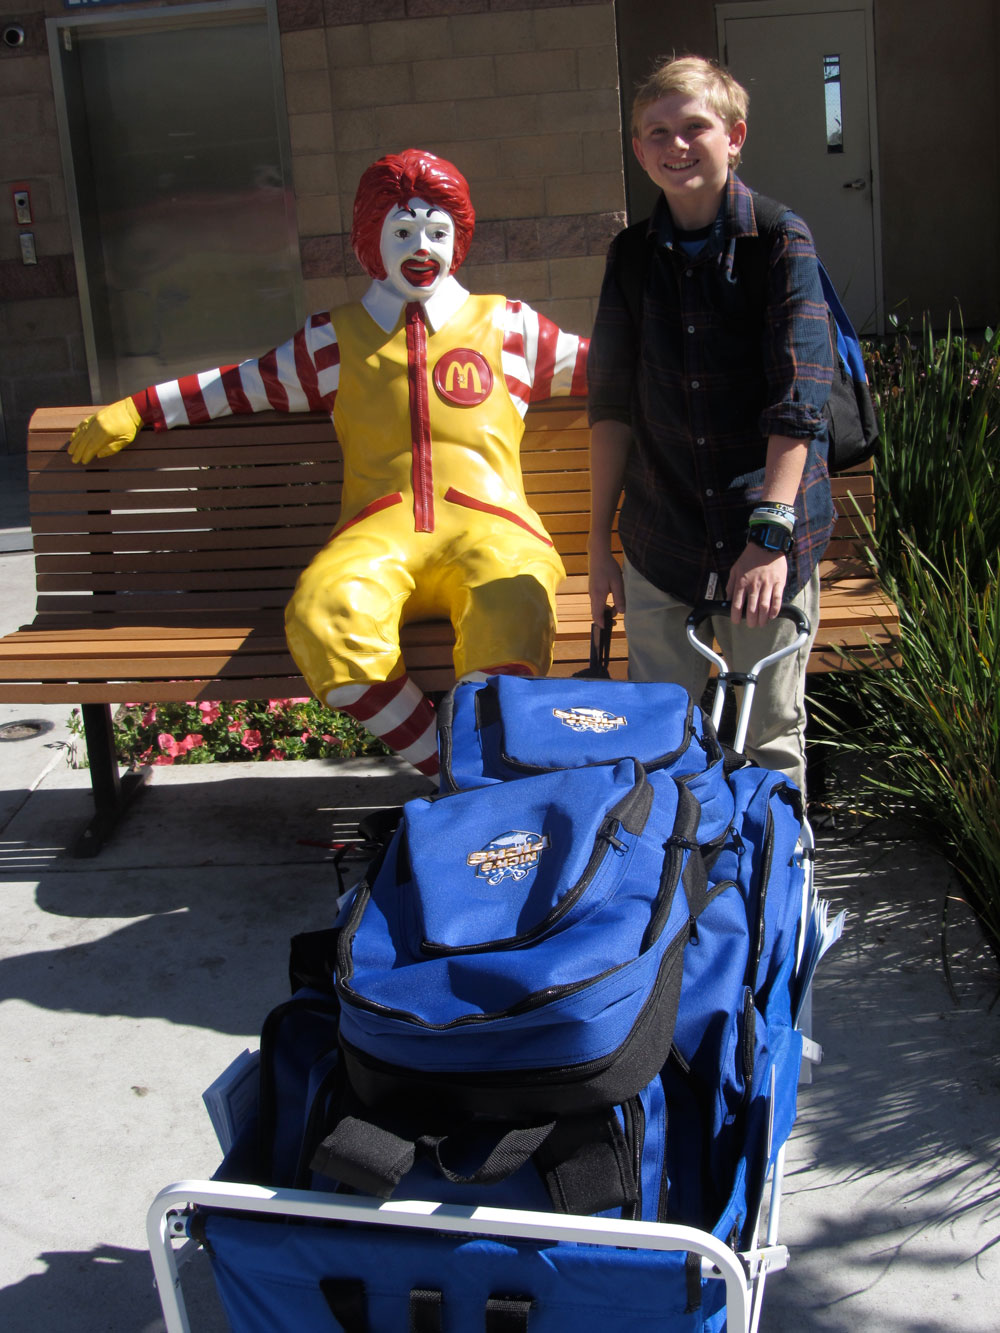 Nick taking a break with Ronald McDonald (Ronald McDonald House San Diego)